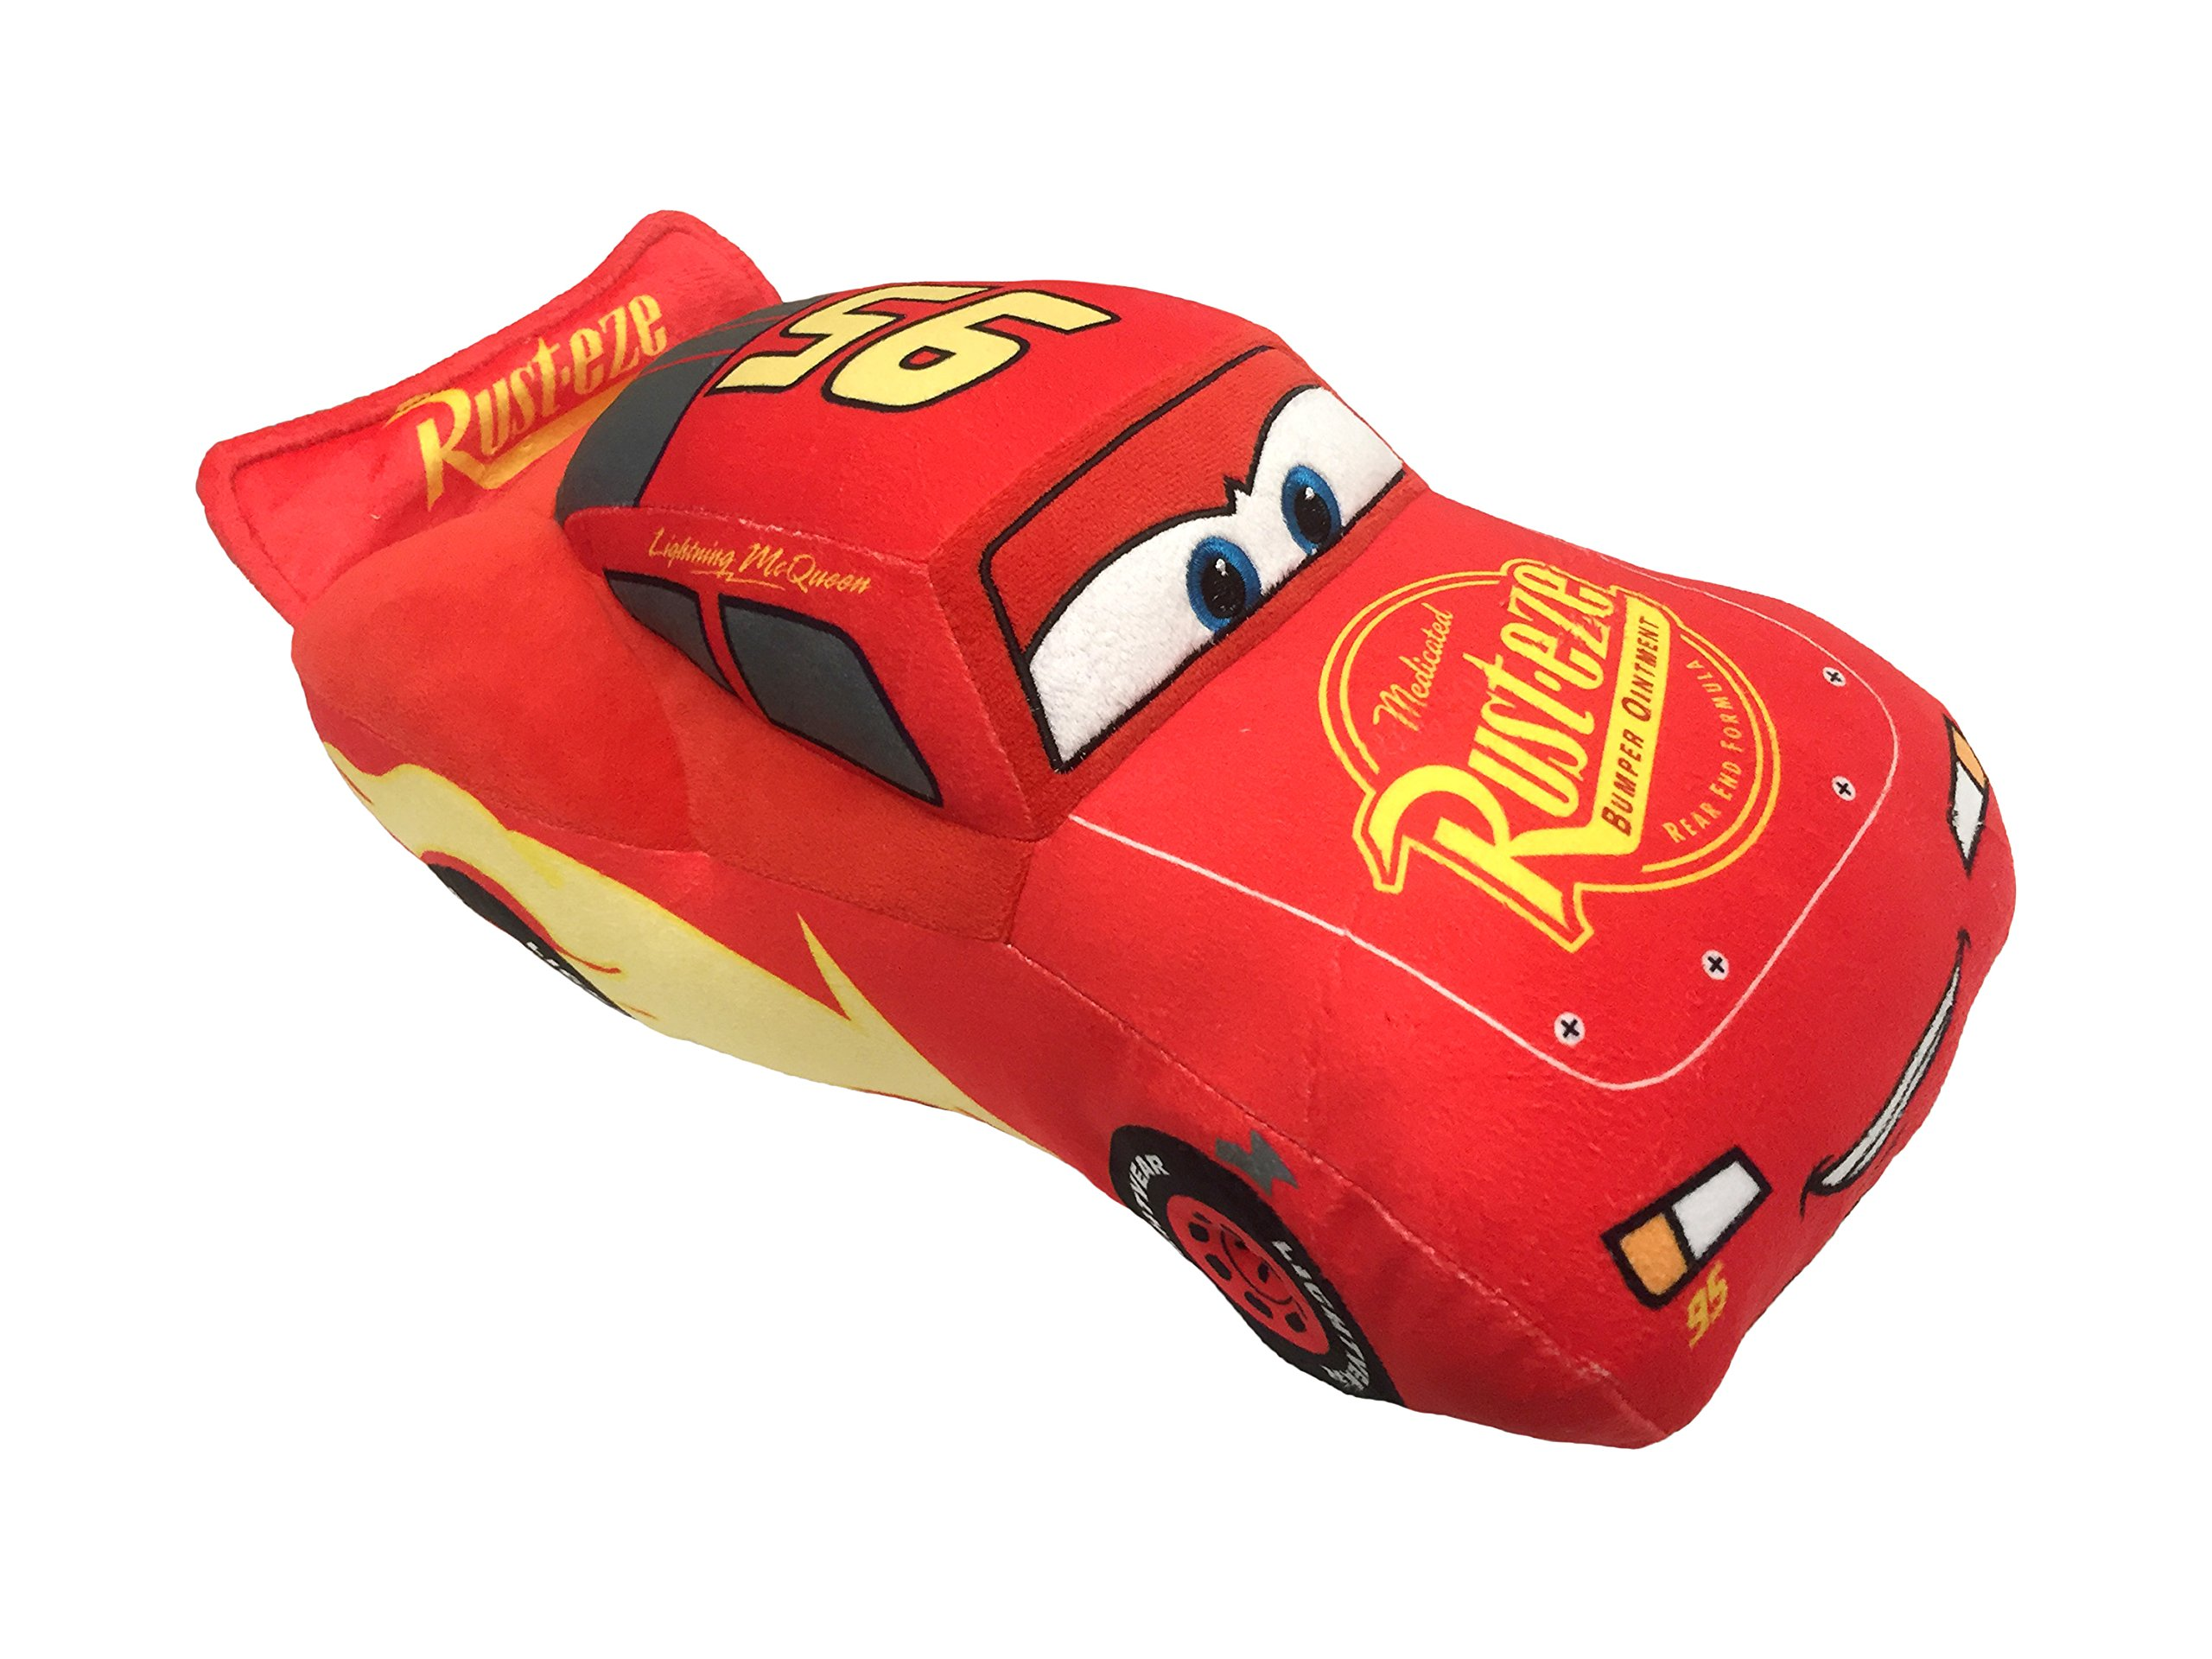 Disney Pixar Cars 3 Plush Stuffed Lightning Mcqueen Red Pillow Buddy - Kids Super Soft Polyester Microfiber, 17 inch (Official Disney Pixar Product) by Jay Franco